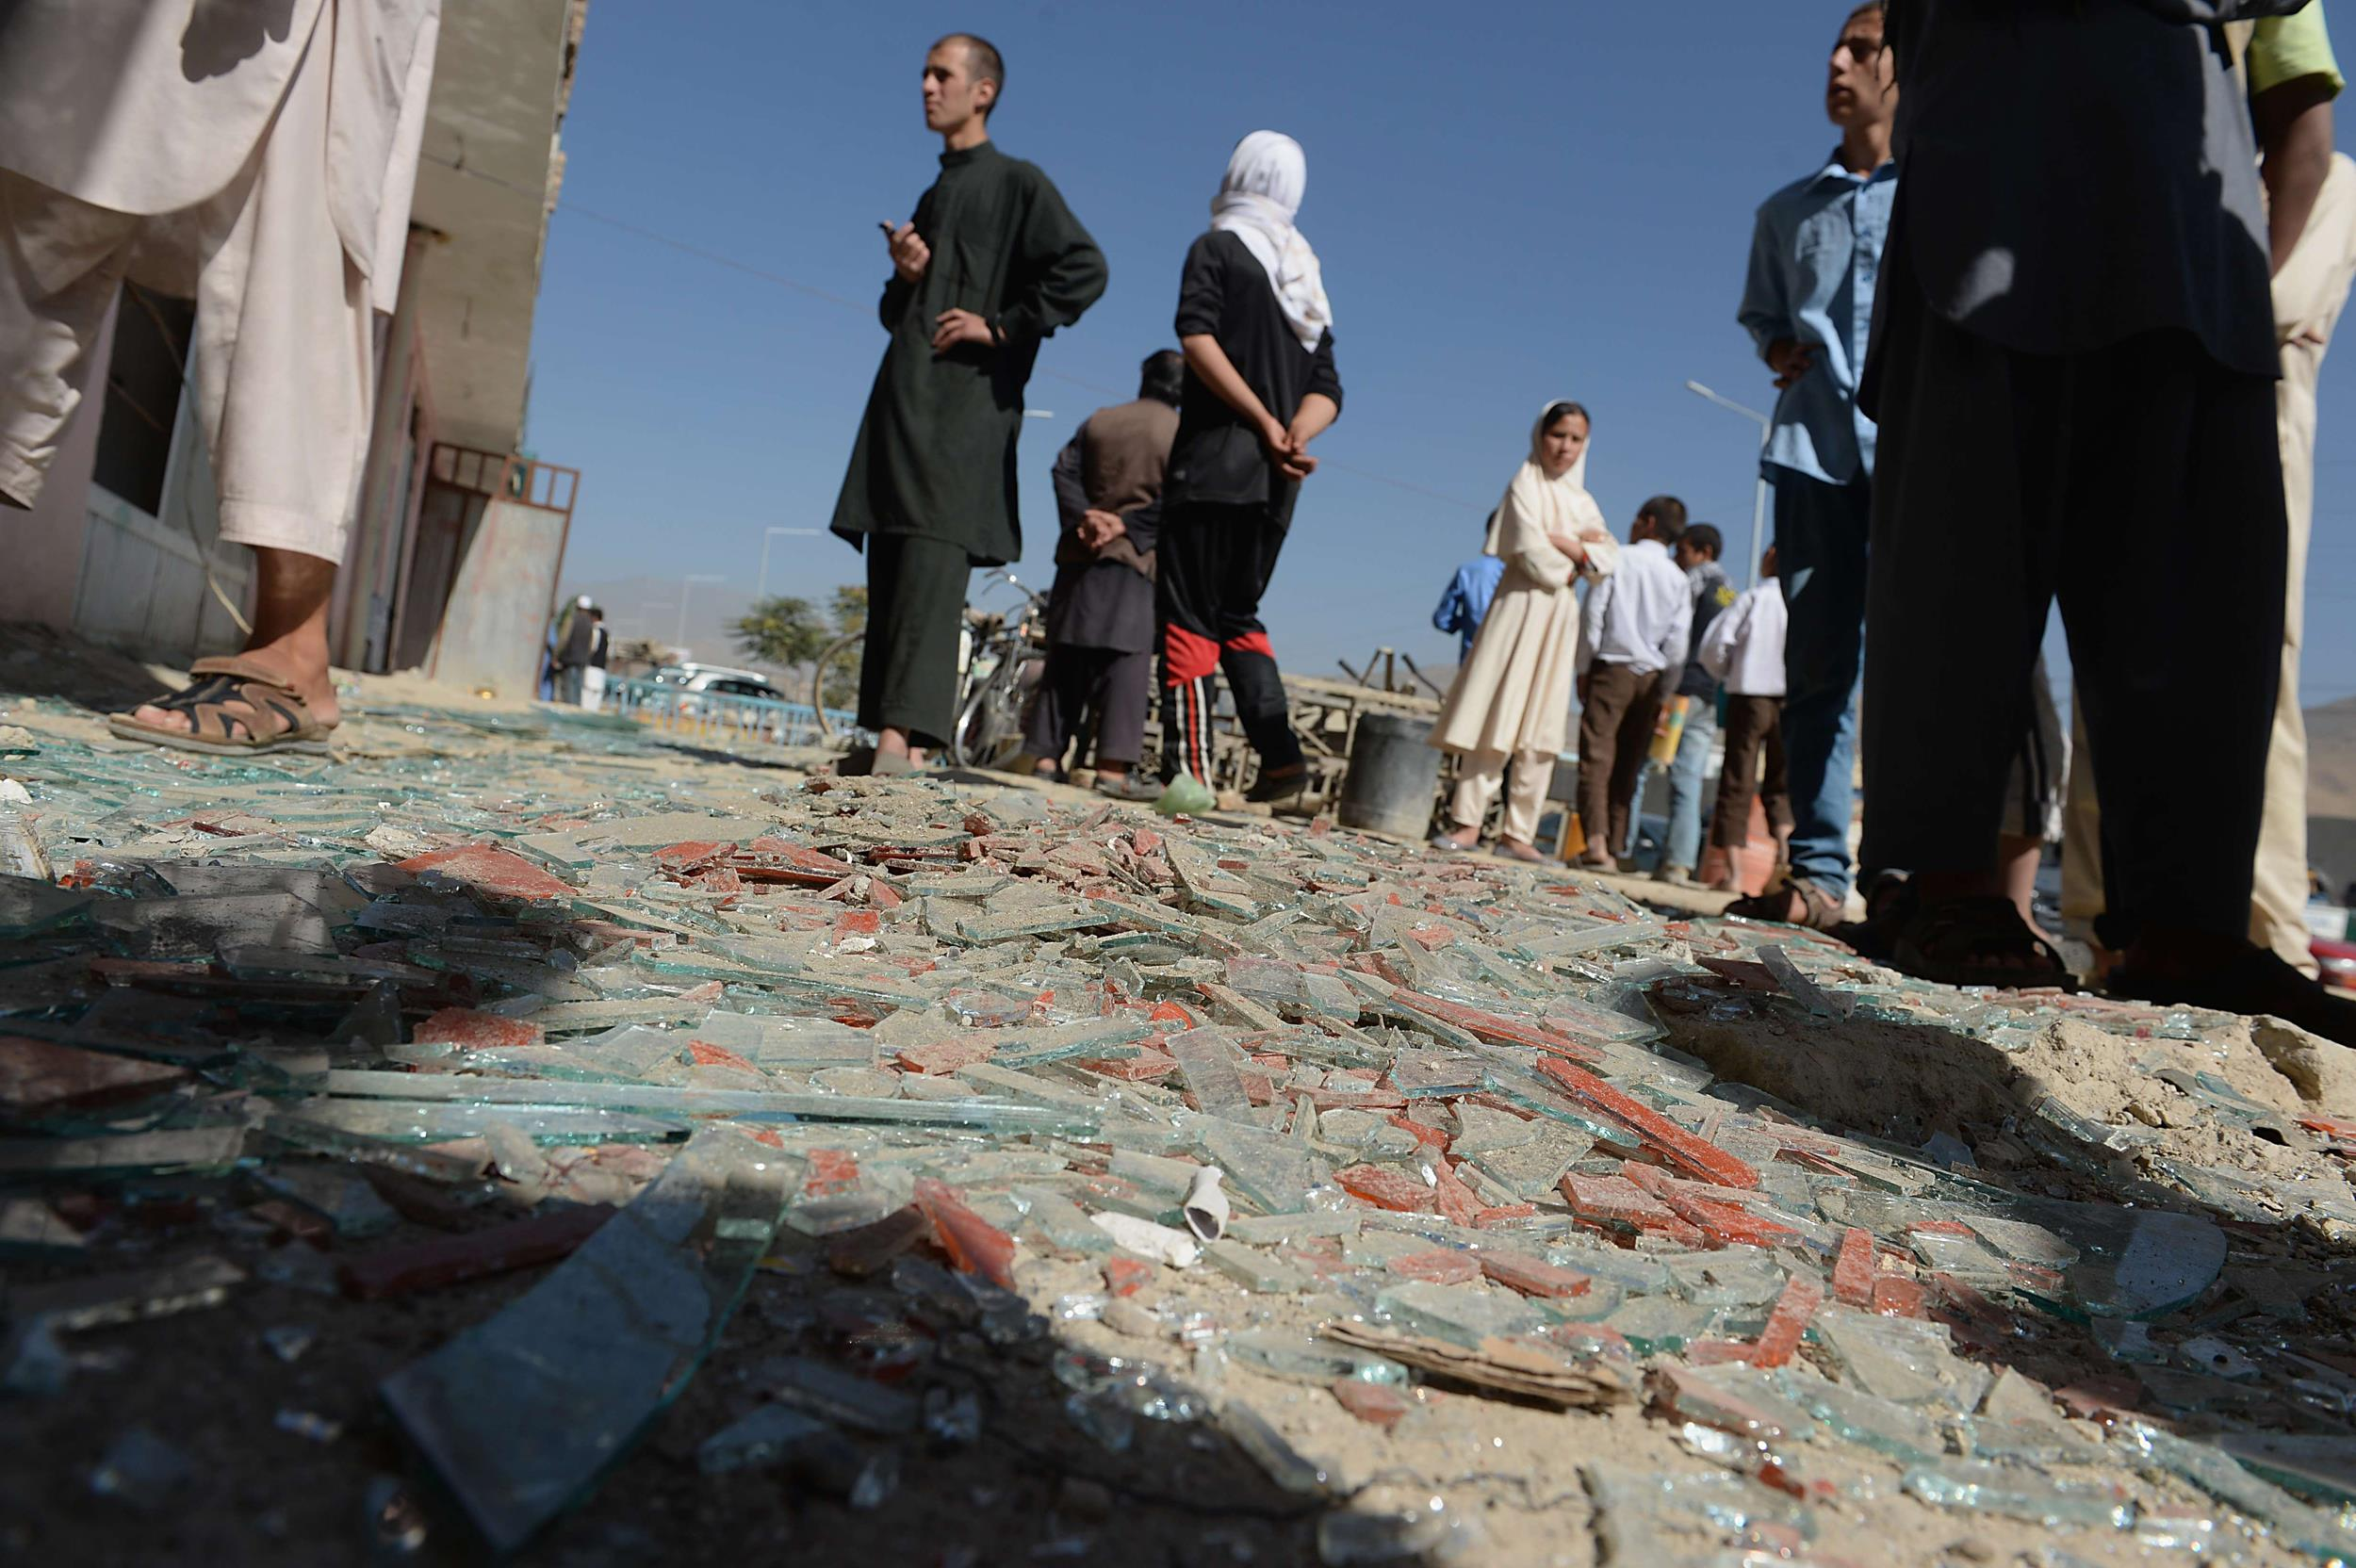 Image: Afghan men look on amid broken glass and debris at the site of a suicide attack in Kabul